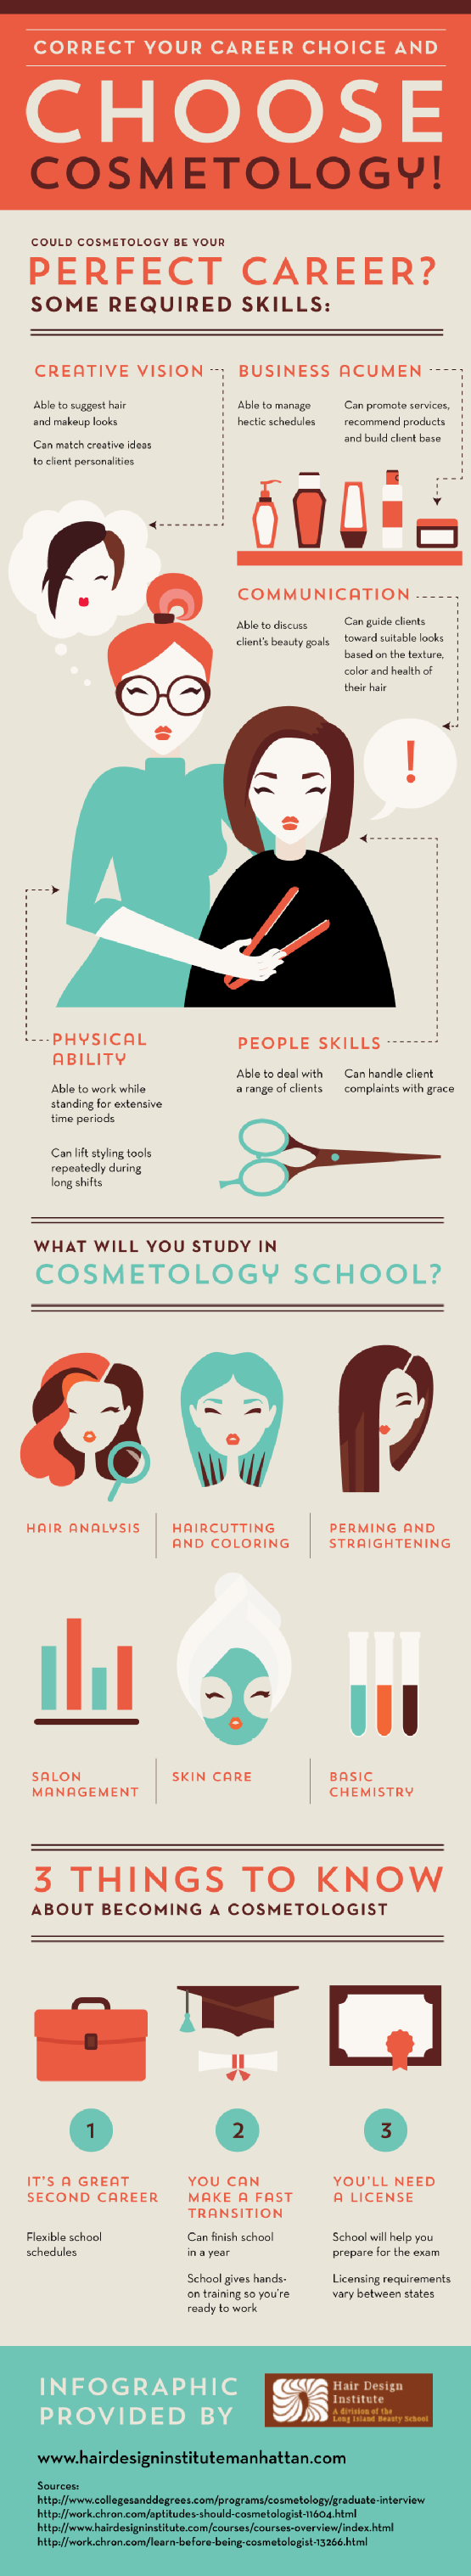 Free Cosmetology Exam (Test) Practice Samples US Cosmetology State ...